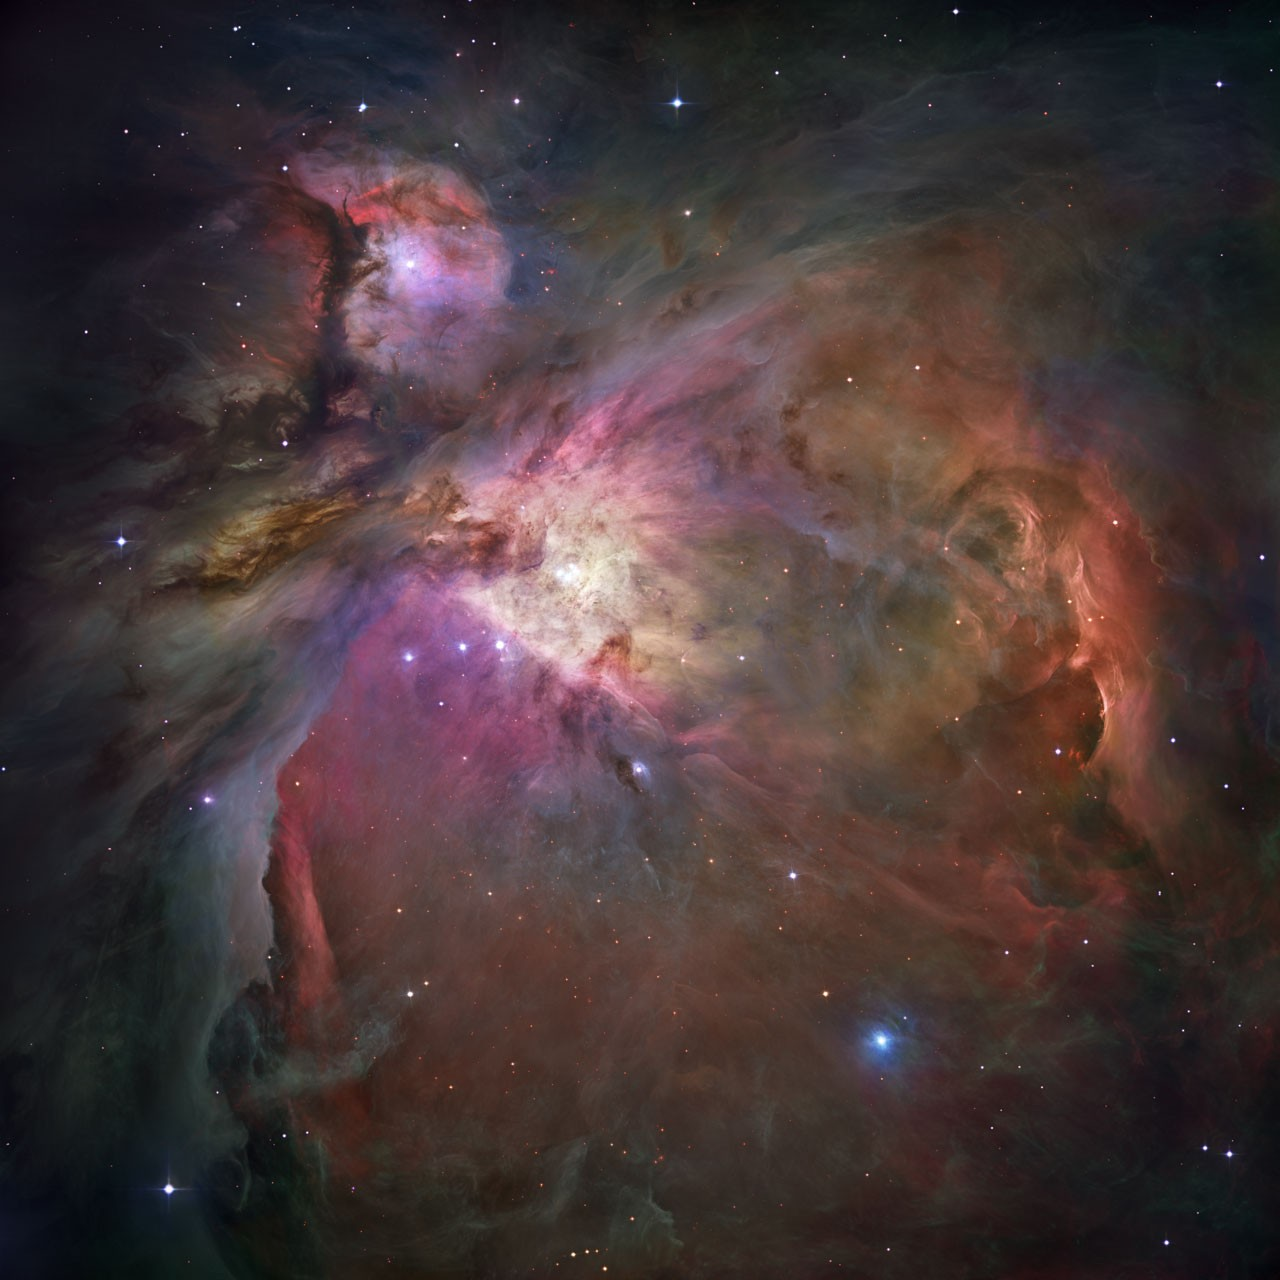 The Orion Nebula, as seen by the Hubble Space Telescope.Credit: NASA, ESA, M. Robberto ( Space Telescope Science Institute/ESA) and the Hubble Space Telescope Orion Treasury Project Team